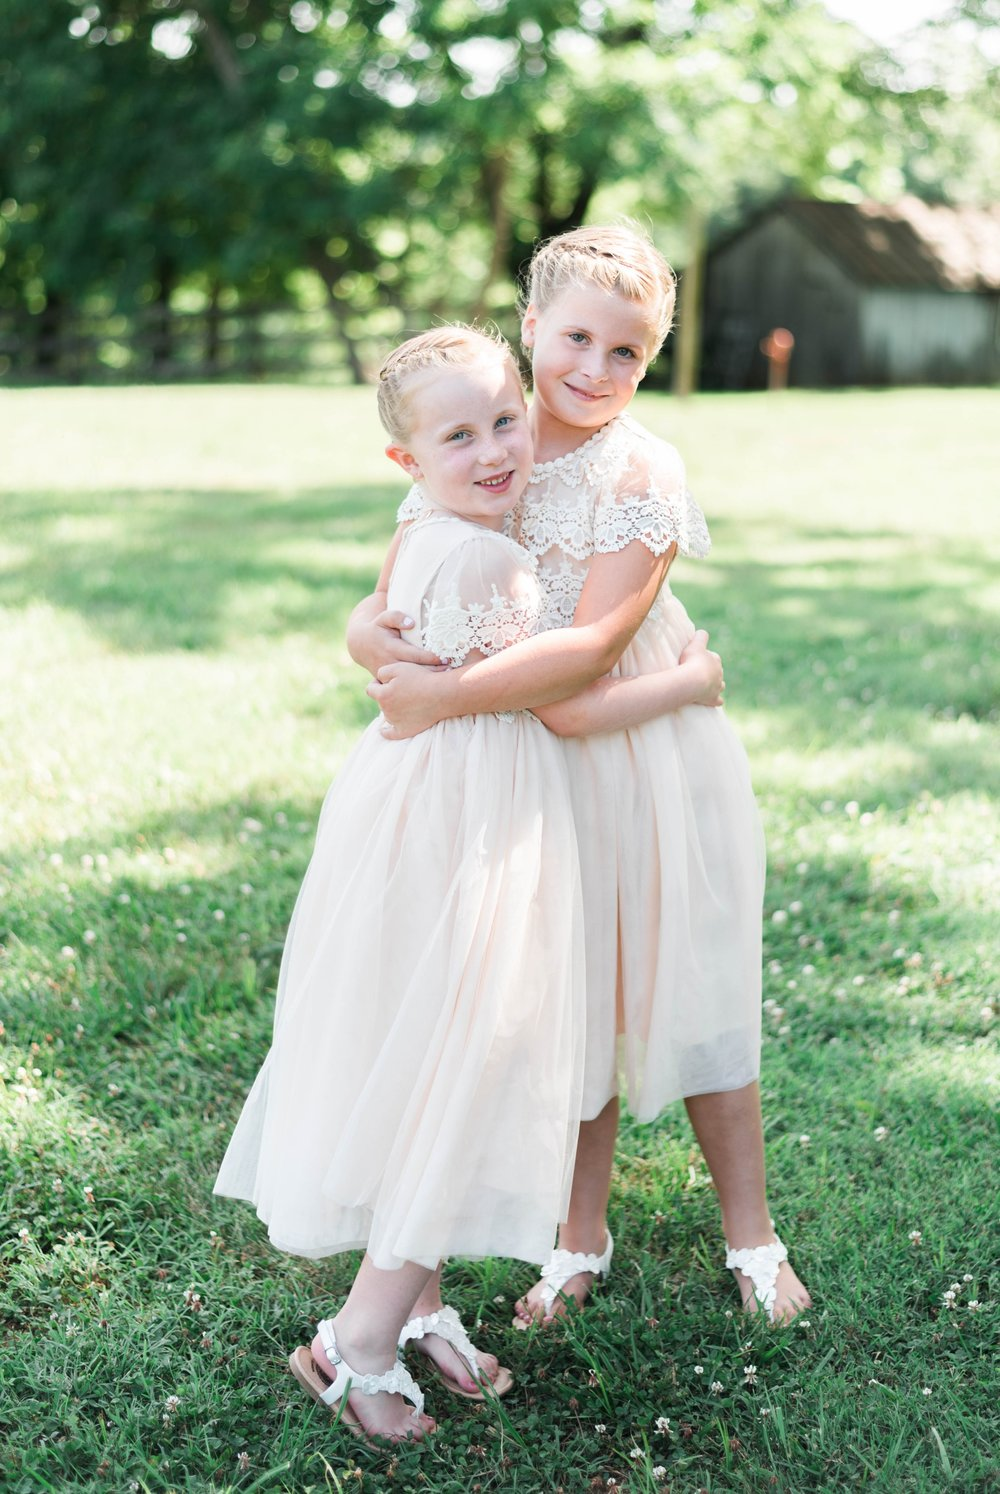 SorellaFarms_VirginiaWeddingPhotographer_BarnWedding_Lynchburgweddingphotographer_DanielleTyler 8.jpg